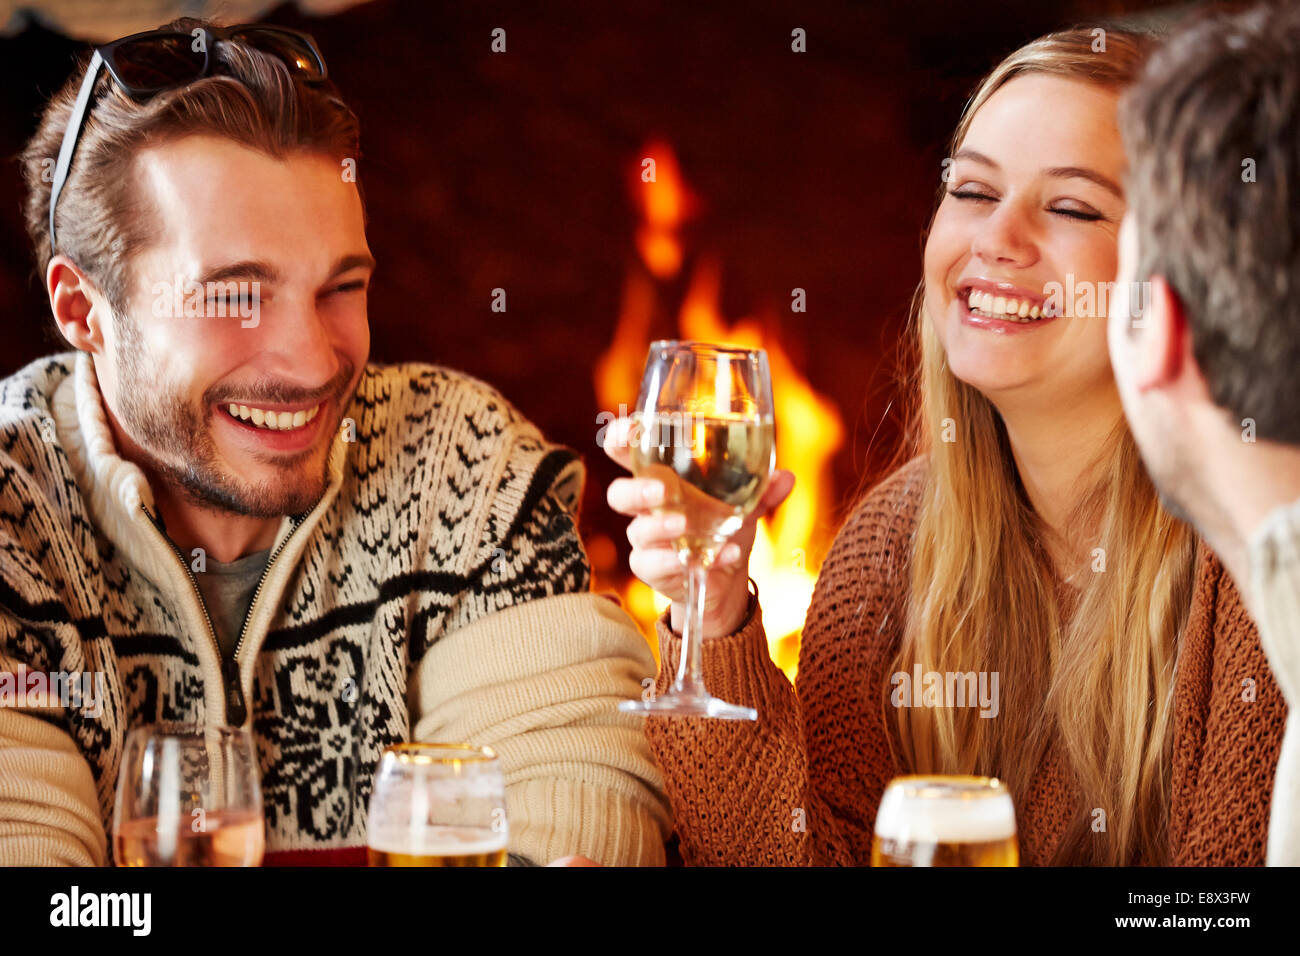 Friends enjoying a meal together - Stock Image